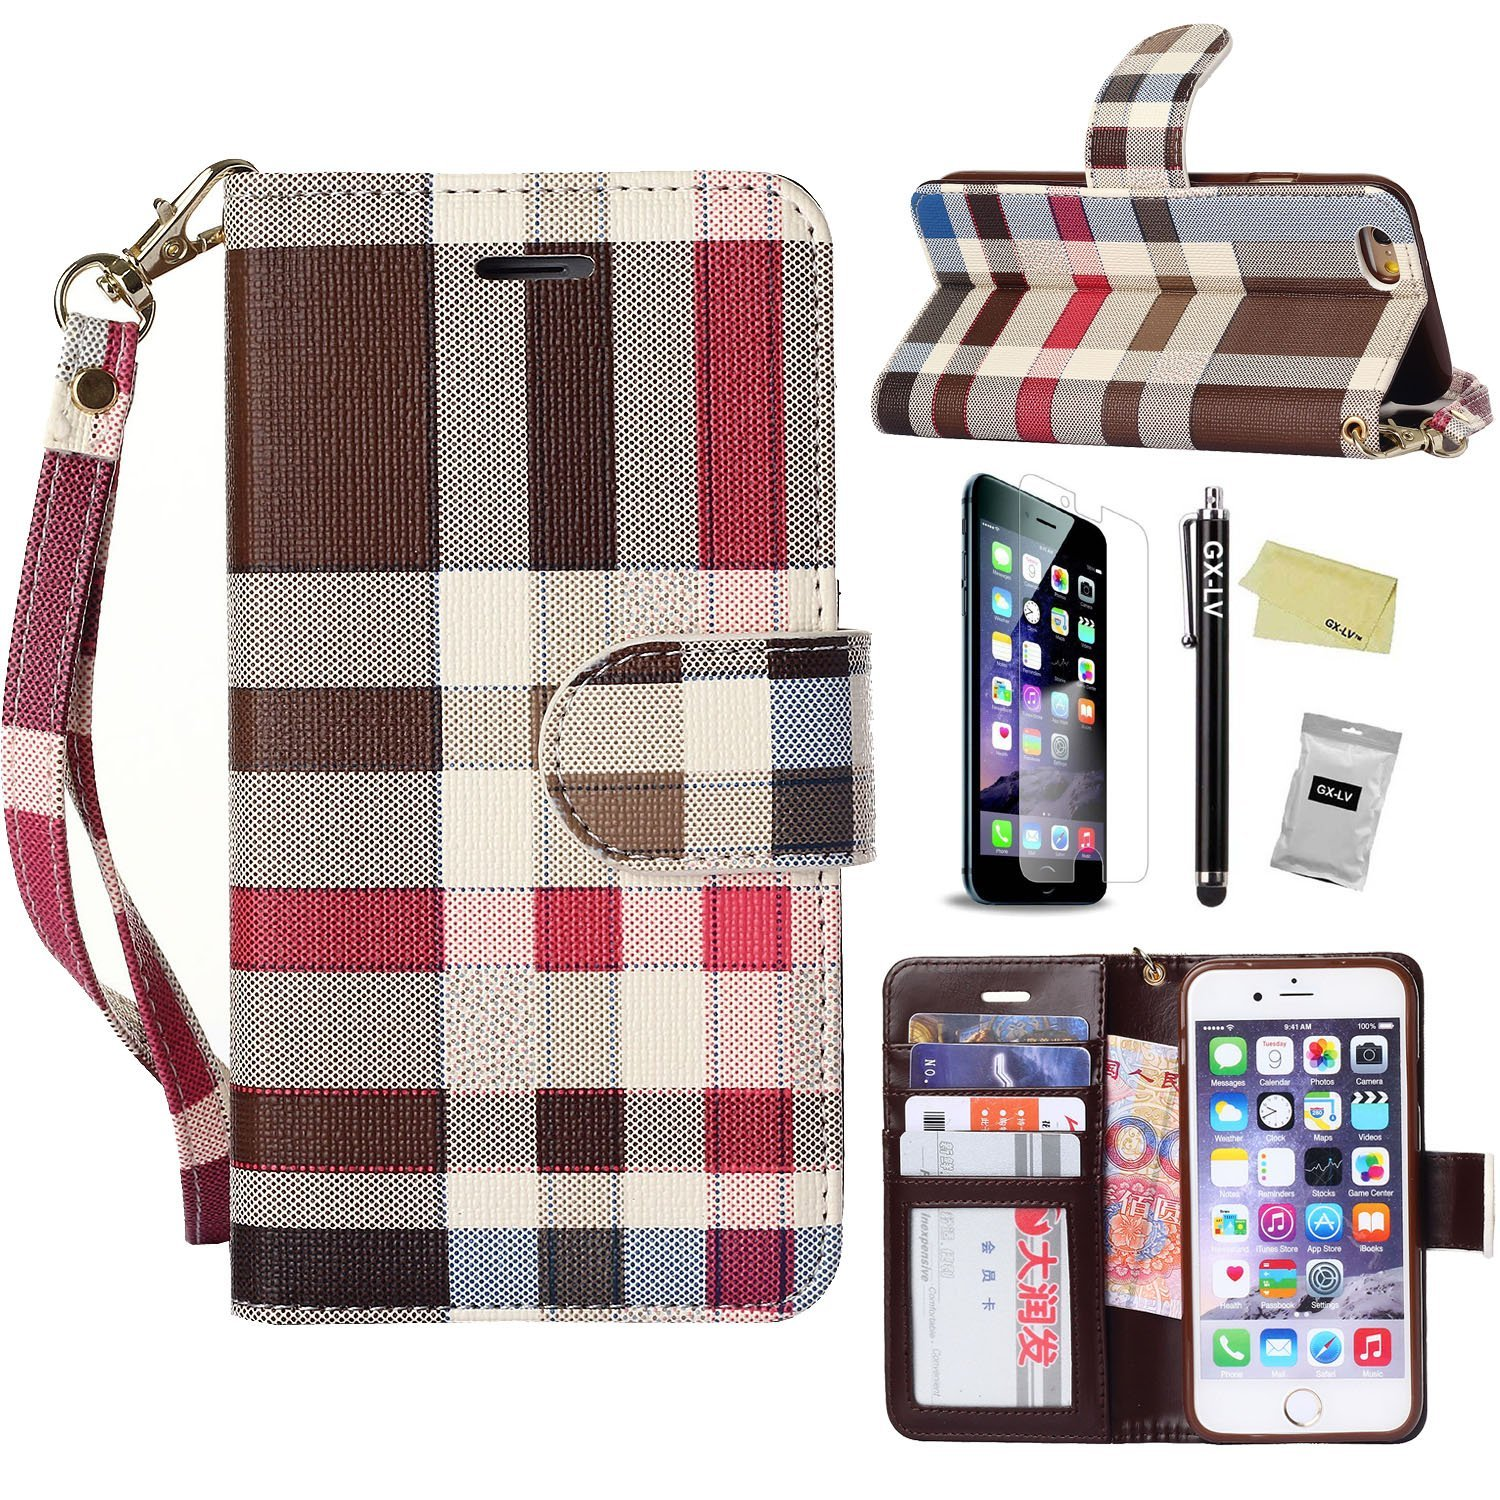 iPhone 6 Case, GX-LV Classic Plaid Pattern Wrist Strap Leather Wallet Cover Case with Card Slots for Apple iPhone 6 4.7 inch,GX-LV@ Retail Packaging,Classic Case - Brown1